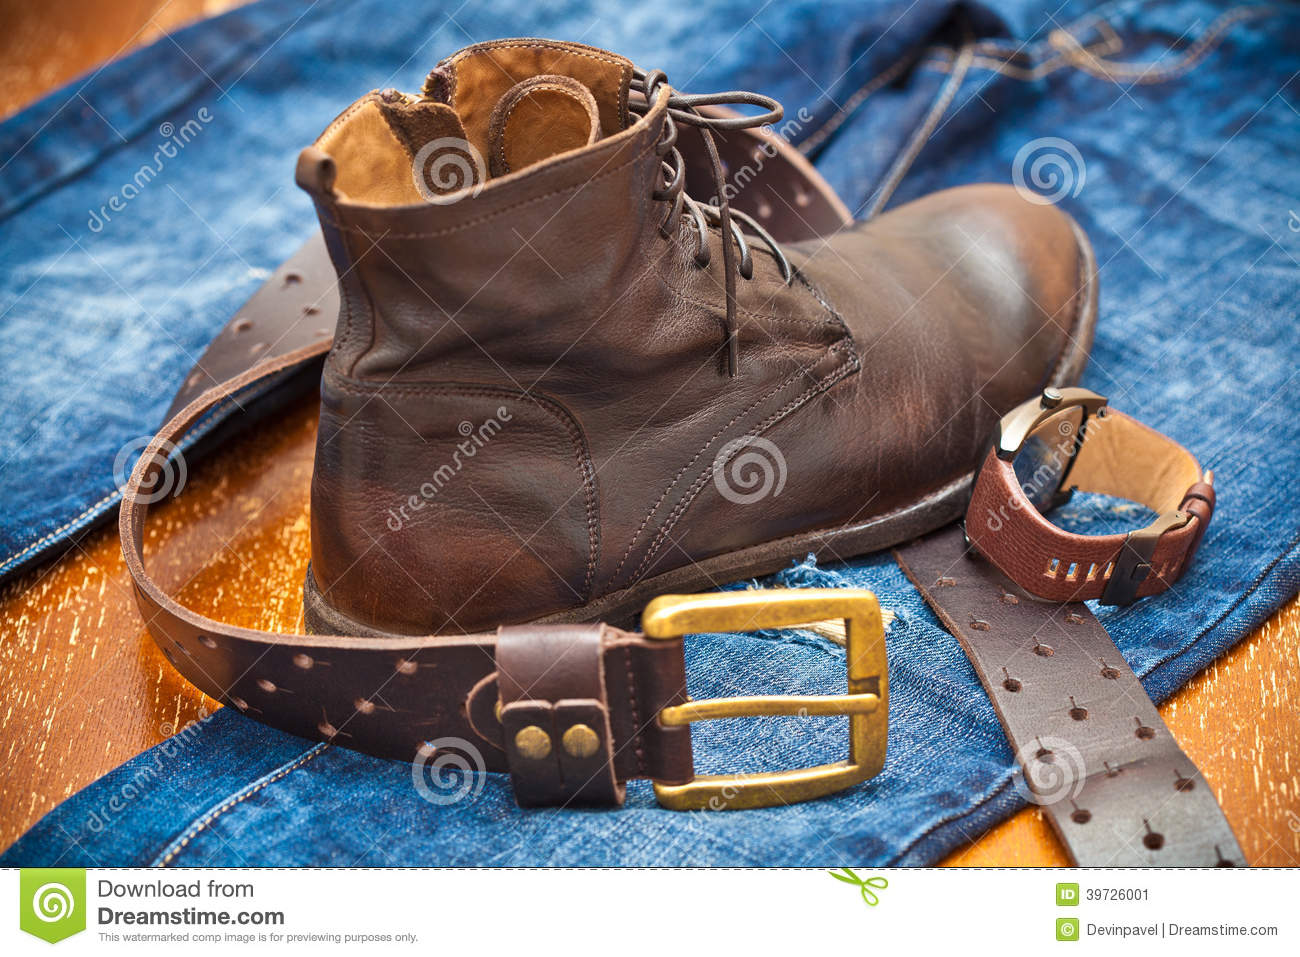 Men 39 S Watches Leather Shoes Jeans Belt Stock Image Image 39726001